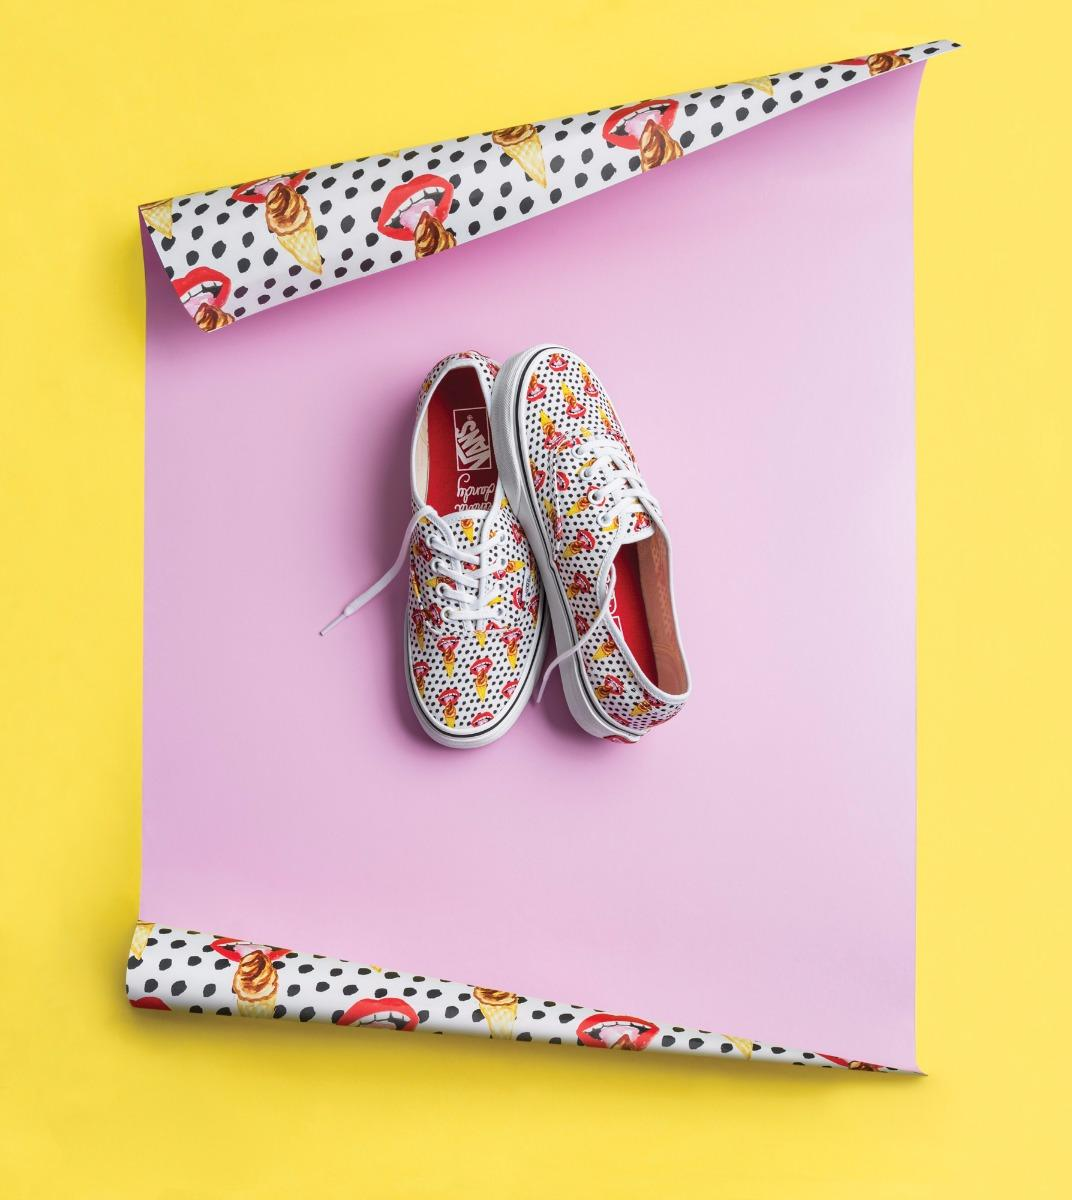 vans x kendra dandy vans australia the vans x kendra dandy collection is available globally march 2017